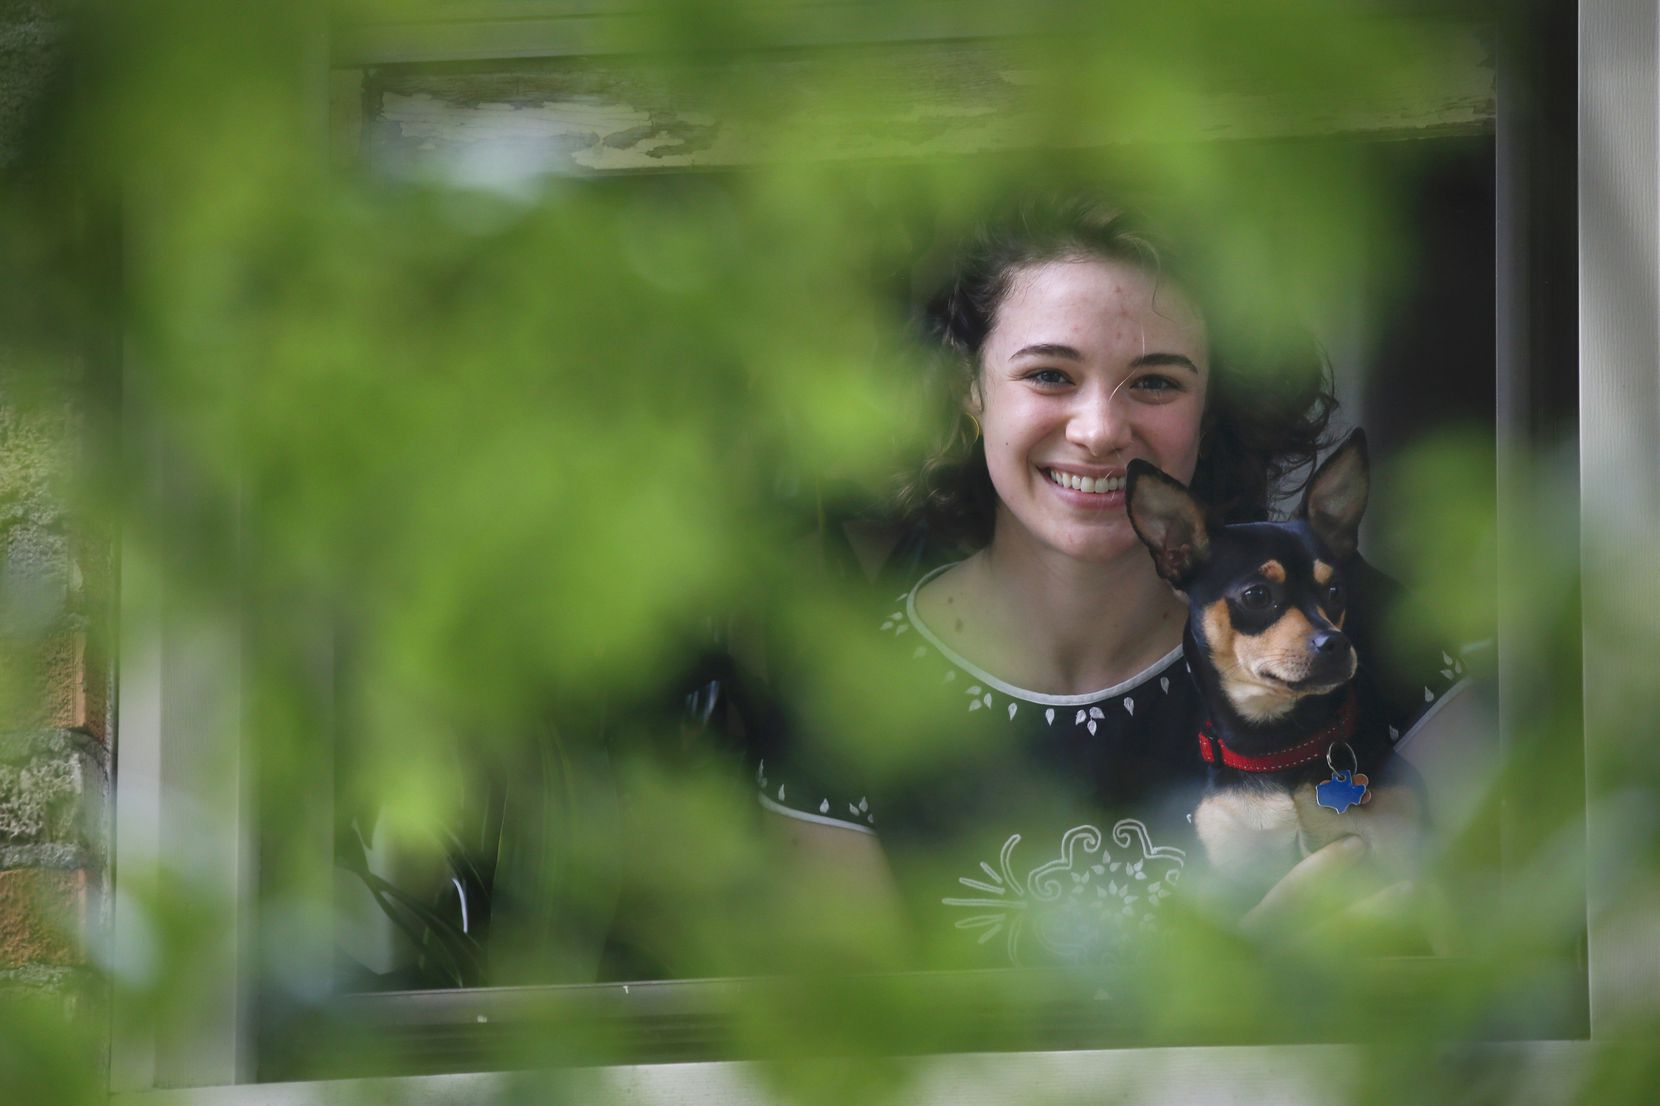 Erinn Sensenig poses for a photograph with her dog Ollie in the window of her Dallas apartment, her base for teaching remotely during the COVID-19 pandemic. Sensenig is a soprano who instructs a range of vocal students.